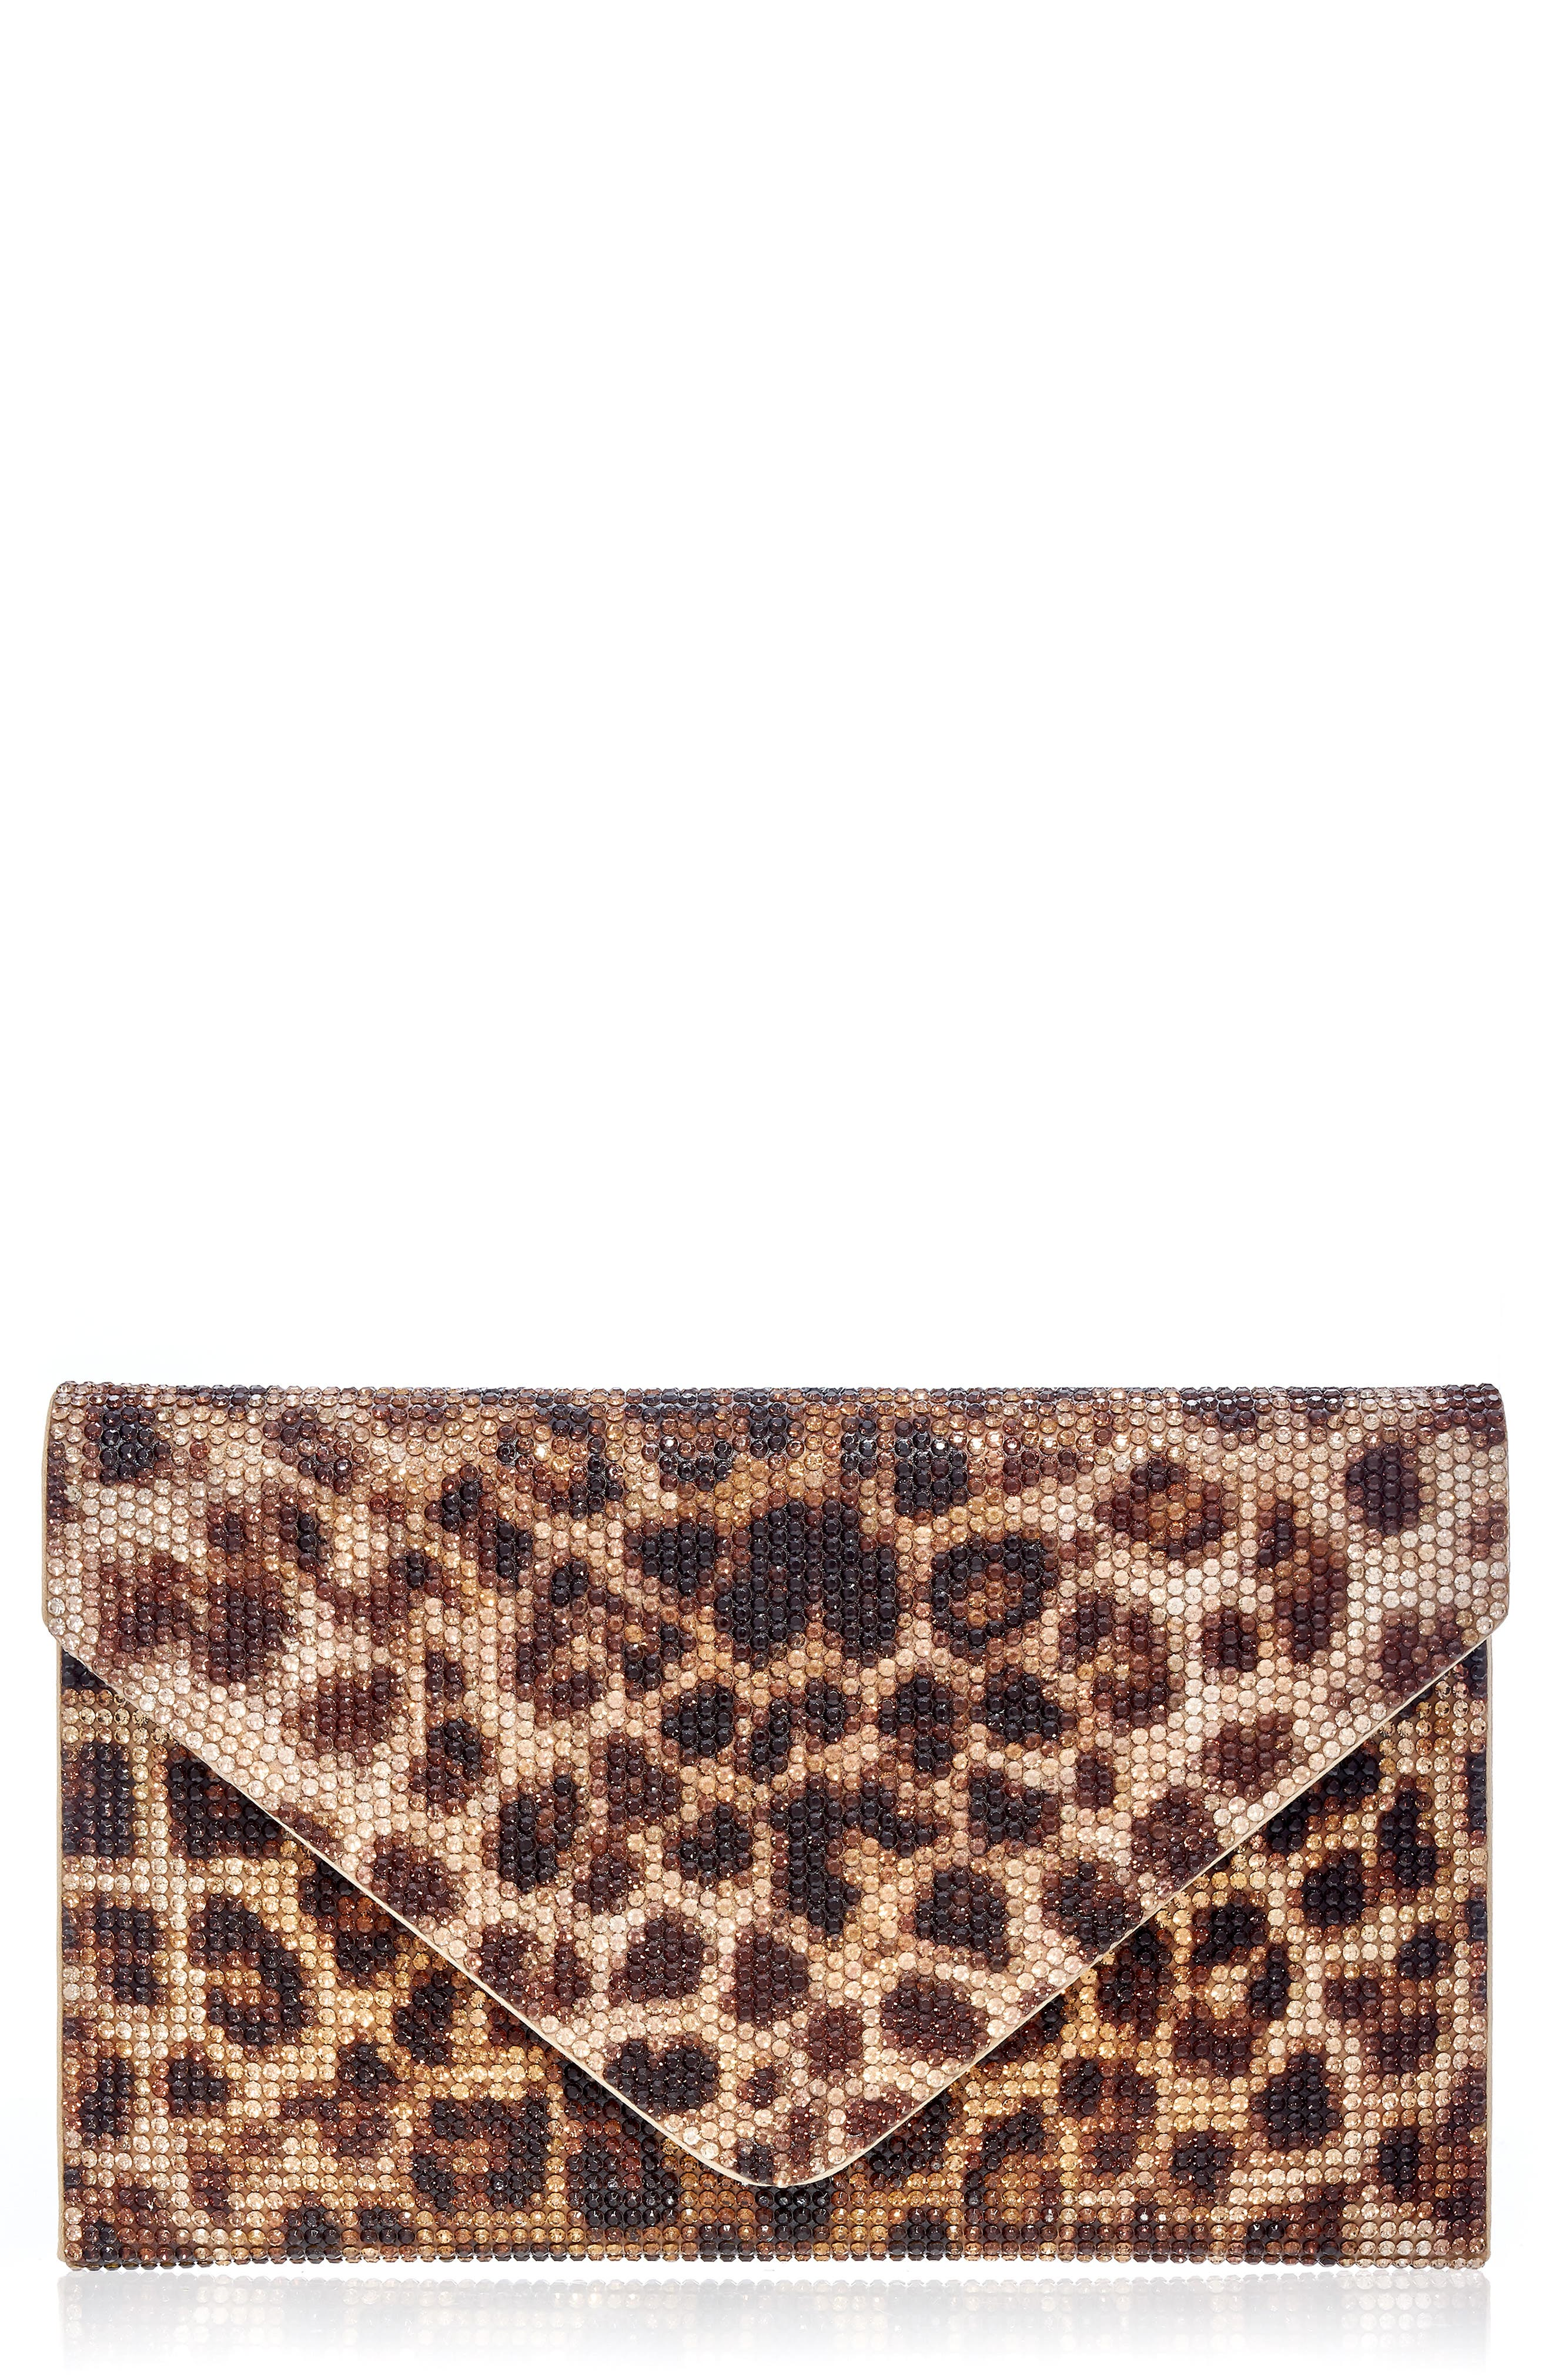 Couture Crystal Leopard Envelope Clutch